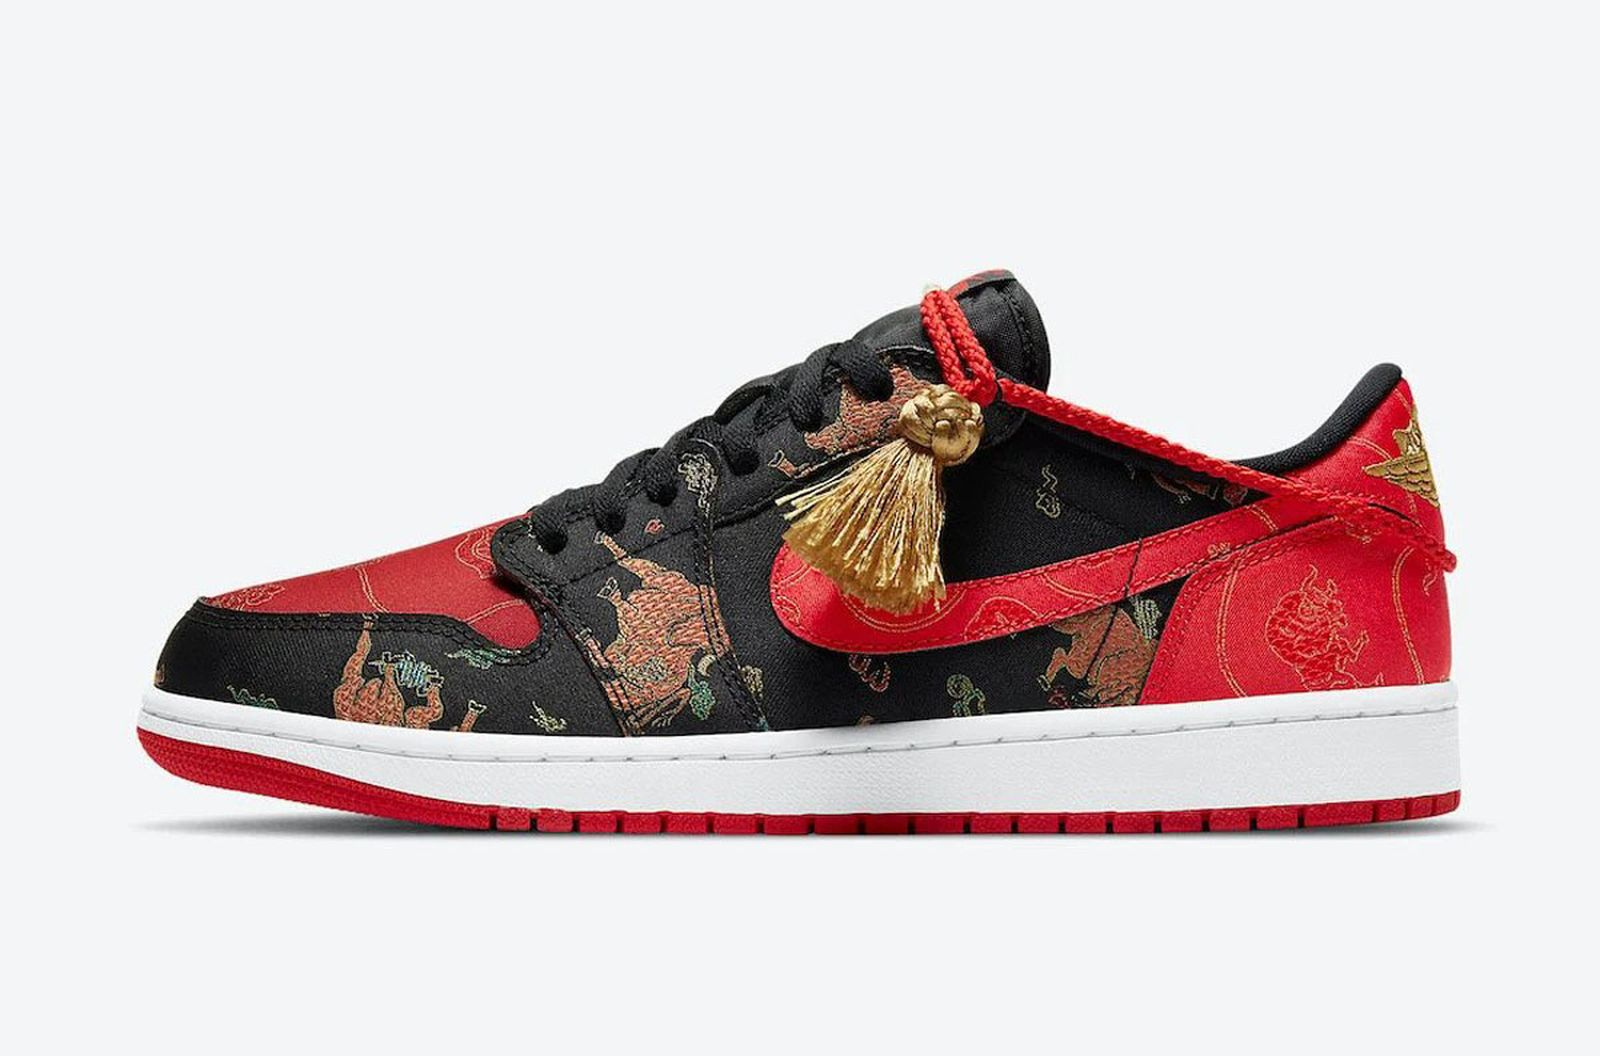 nike-air-jordan-1-low-cny-2021-release-date-price-04